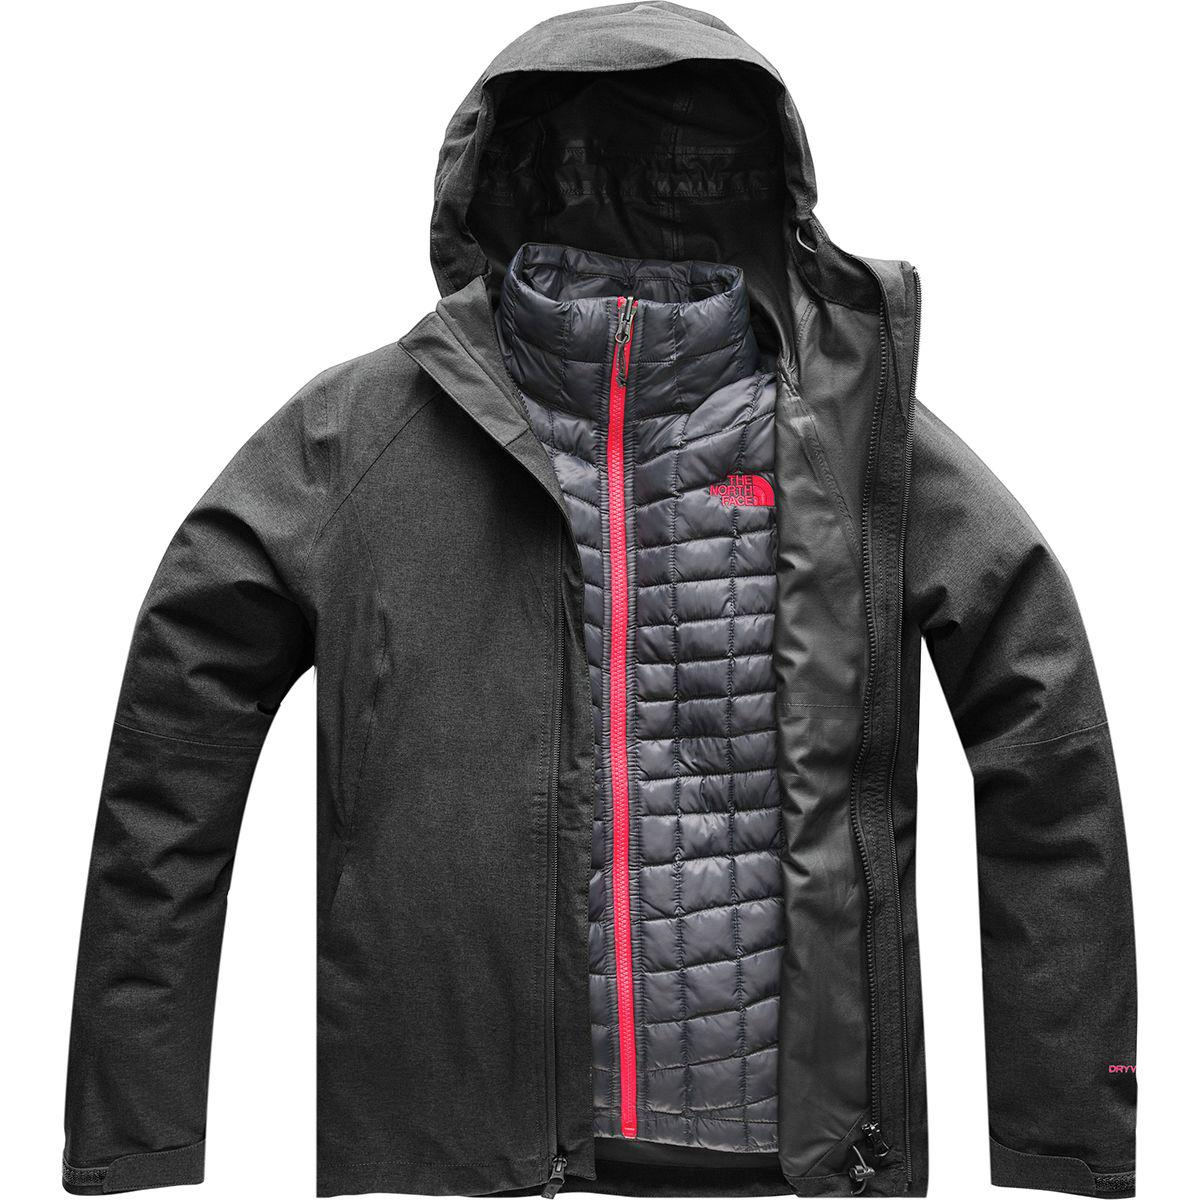 d149edd73e Lyst - The North Face Thermoball Triclimate Jacket in Gray - Save 15%